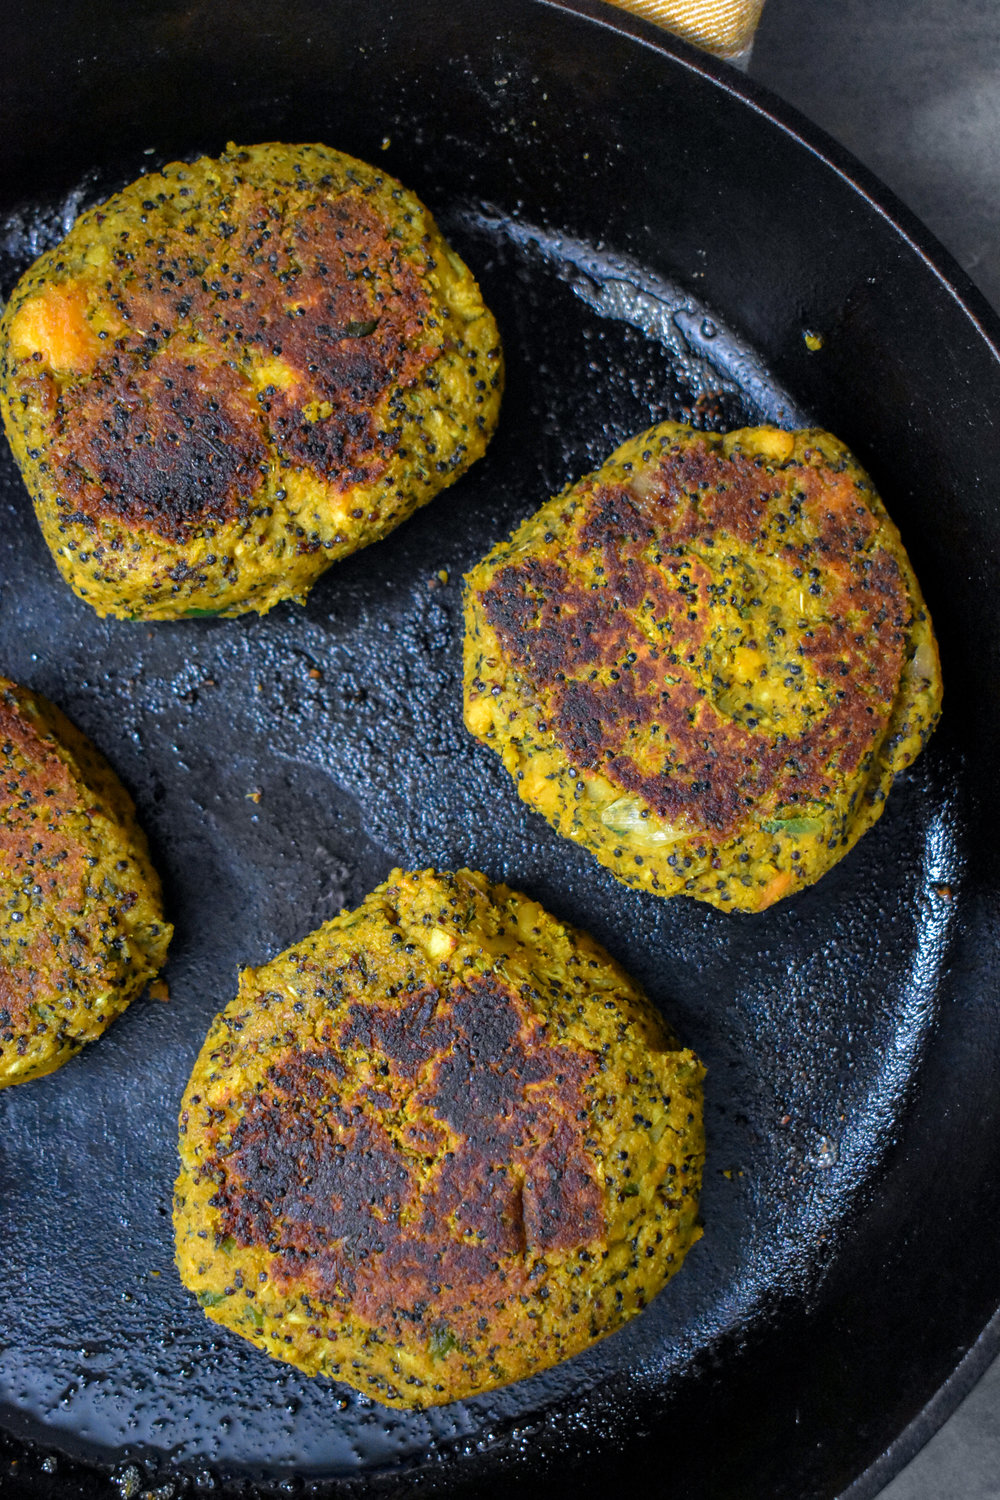 7. Once the patties are formed, add 1-2 tbl of olive oil or vegan butter to a castiron pan / drying pan and cook over medium heat for 4 minutes on each side.